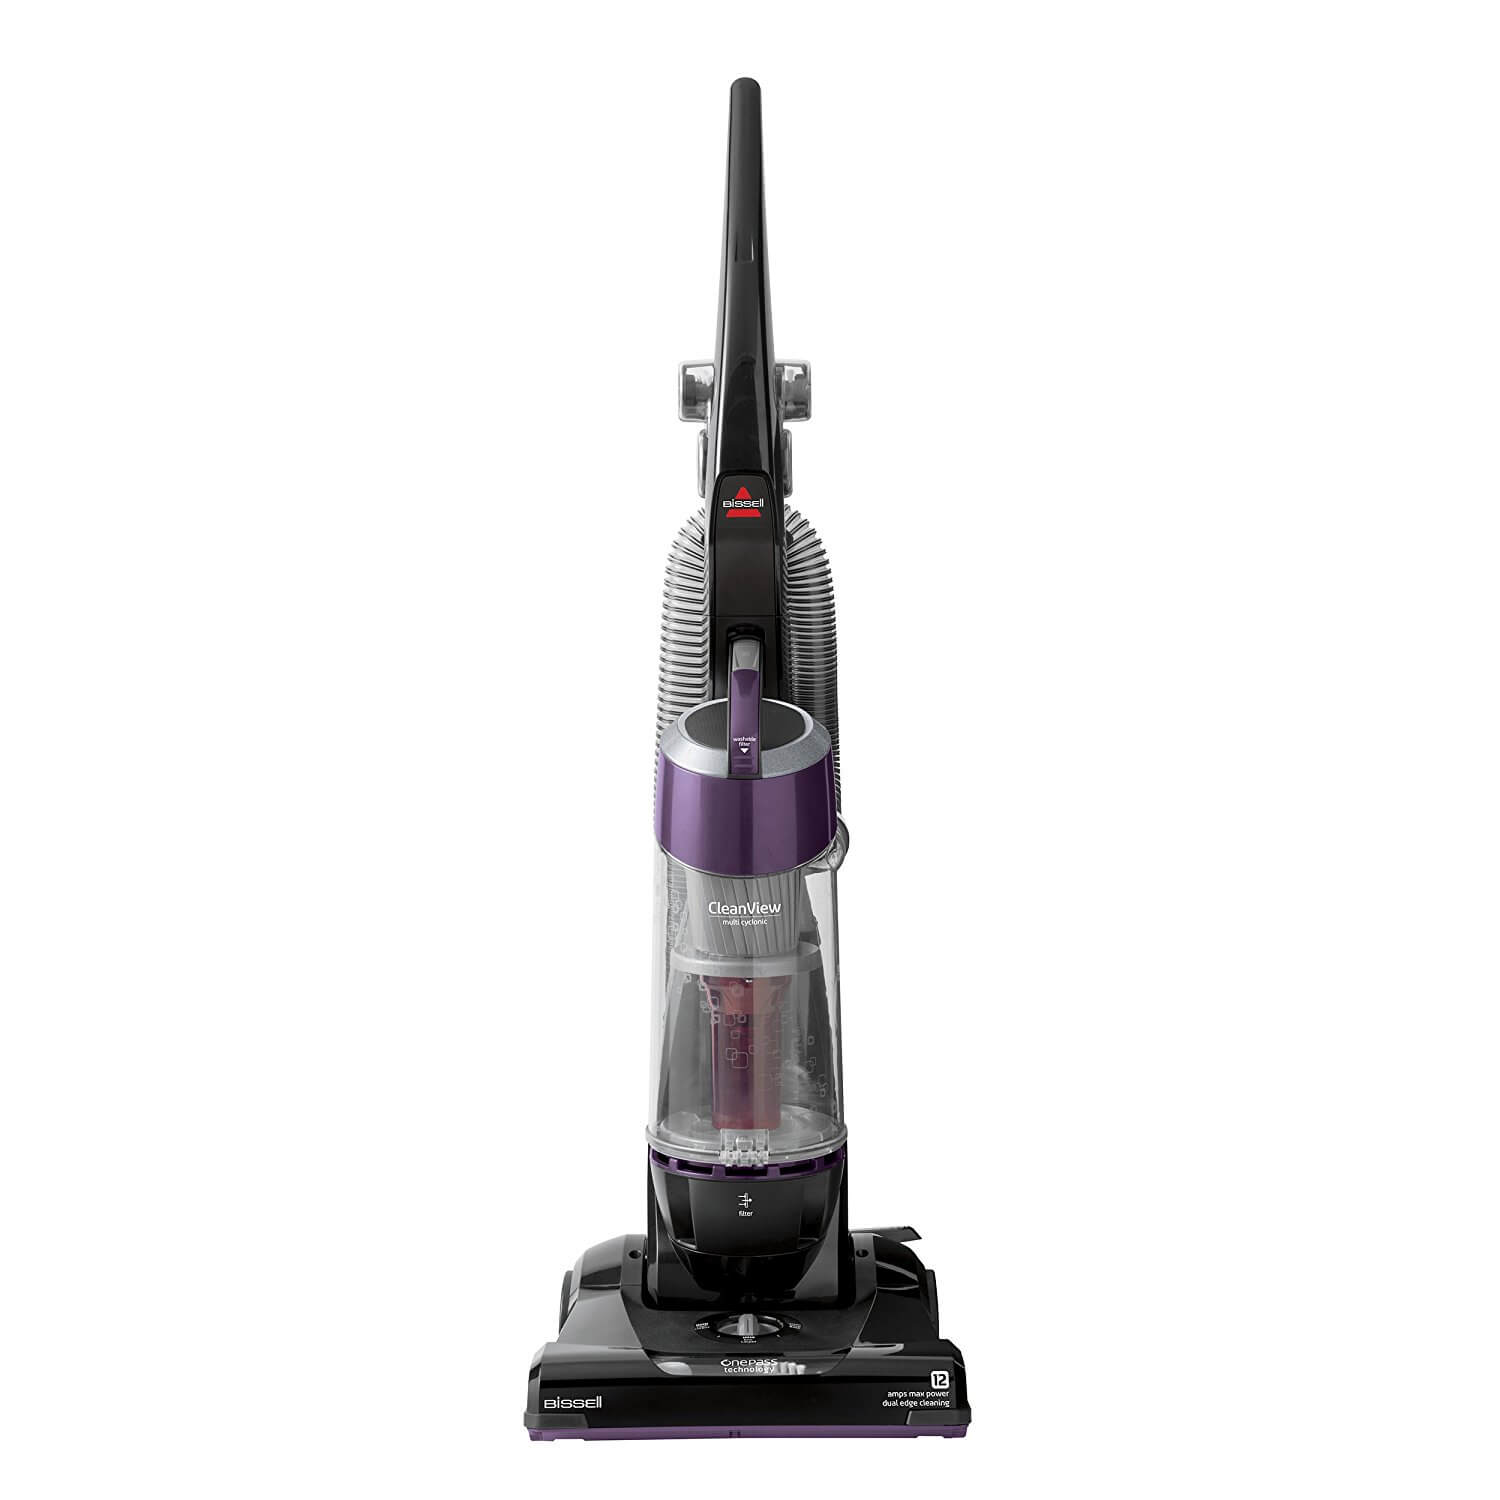 Best Vacuum Under 200 In January 2020 Bestvacuum Reviews